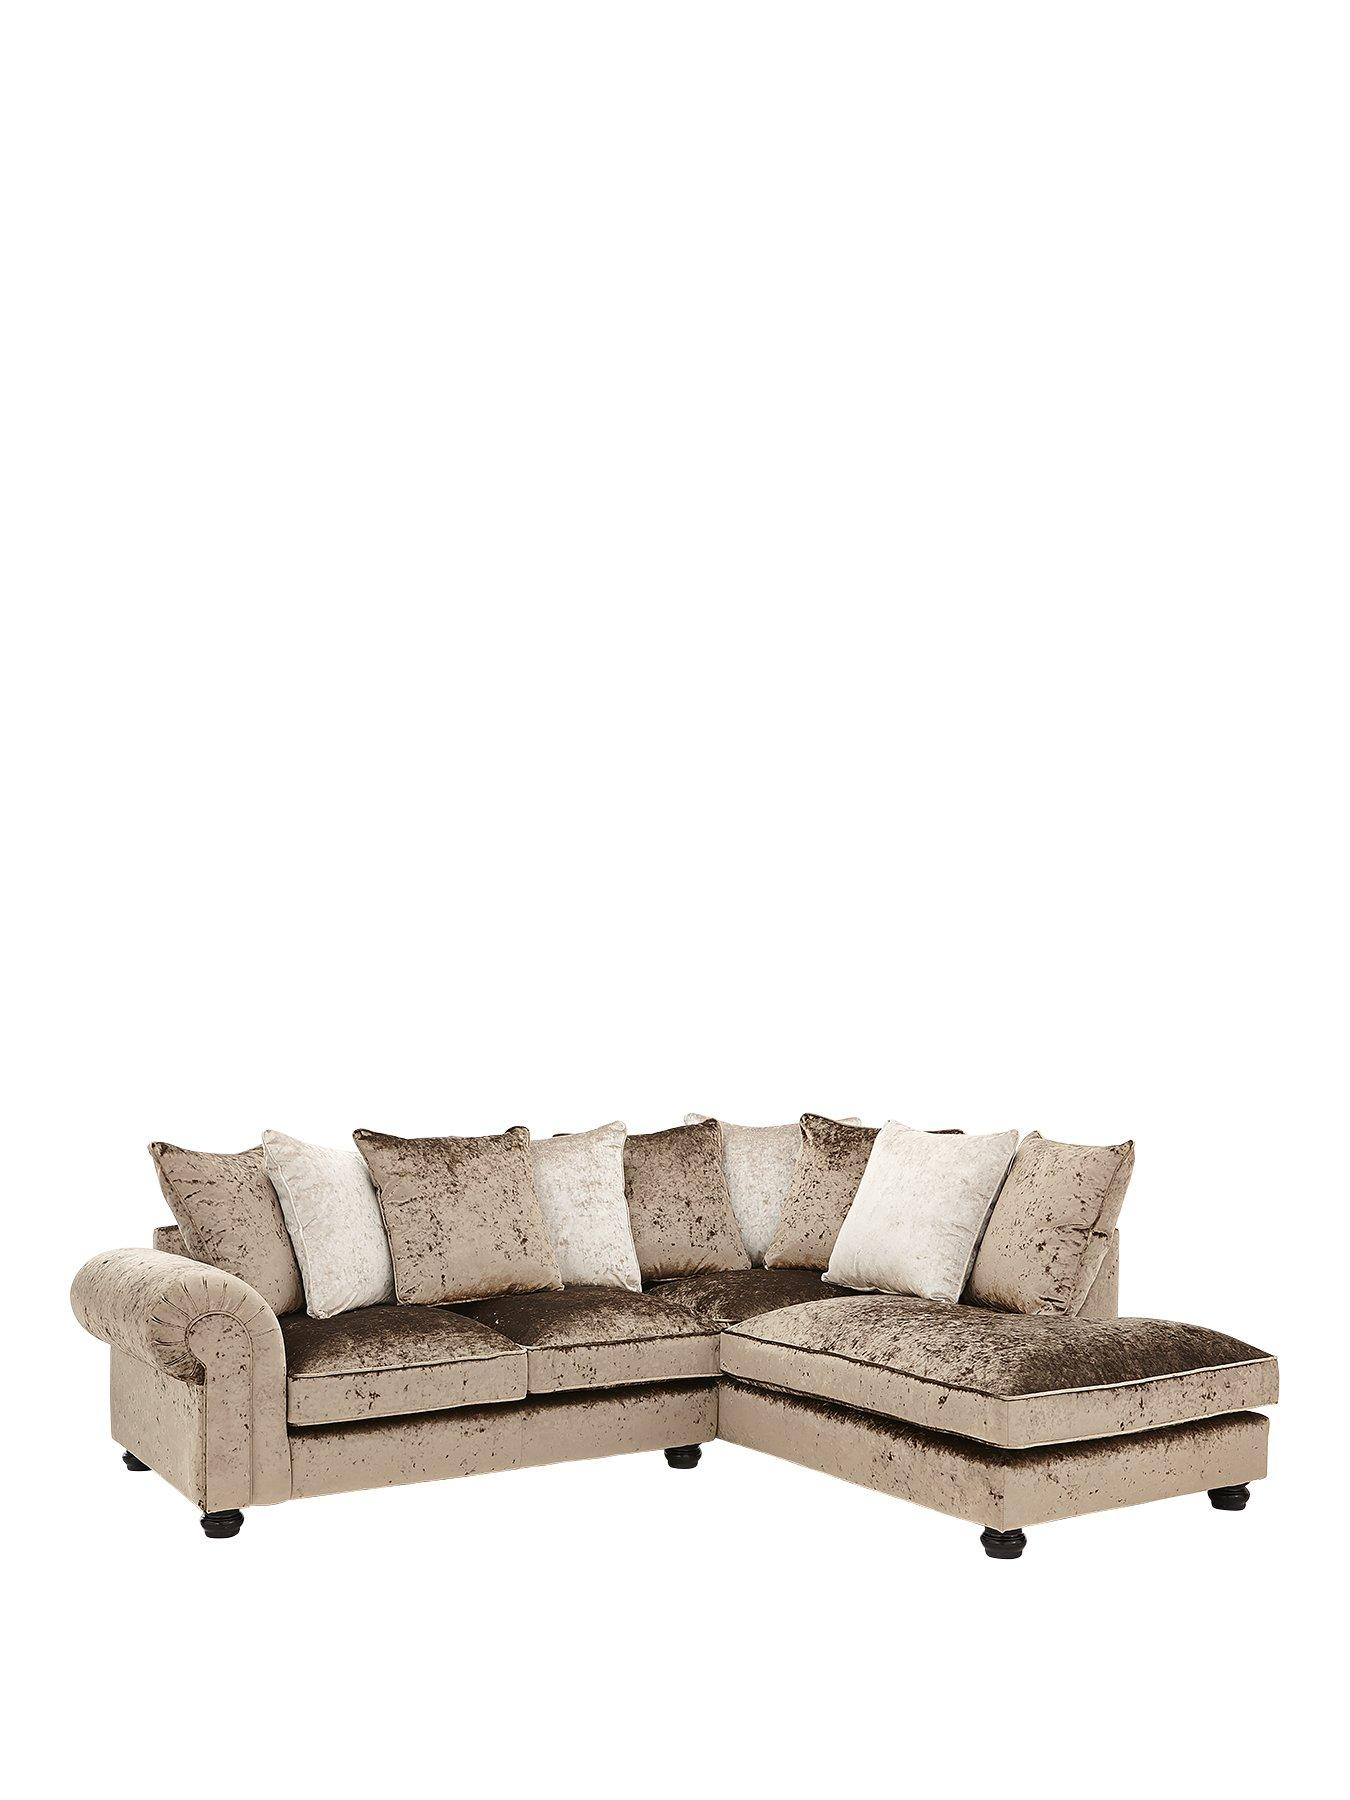 laurence scarpa righthand corner chaise sofa